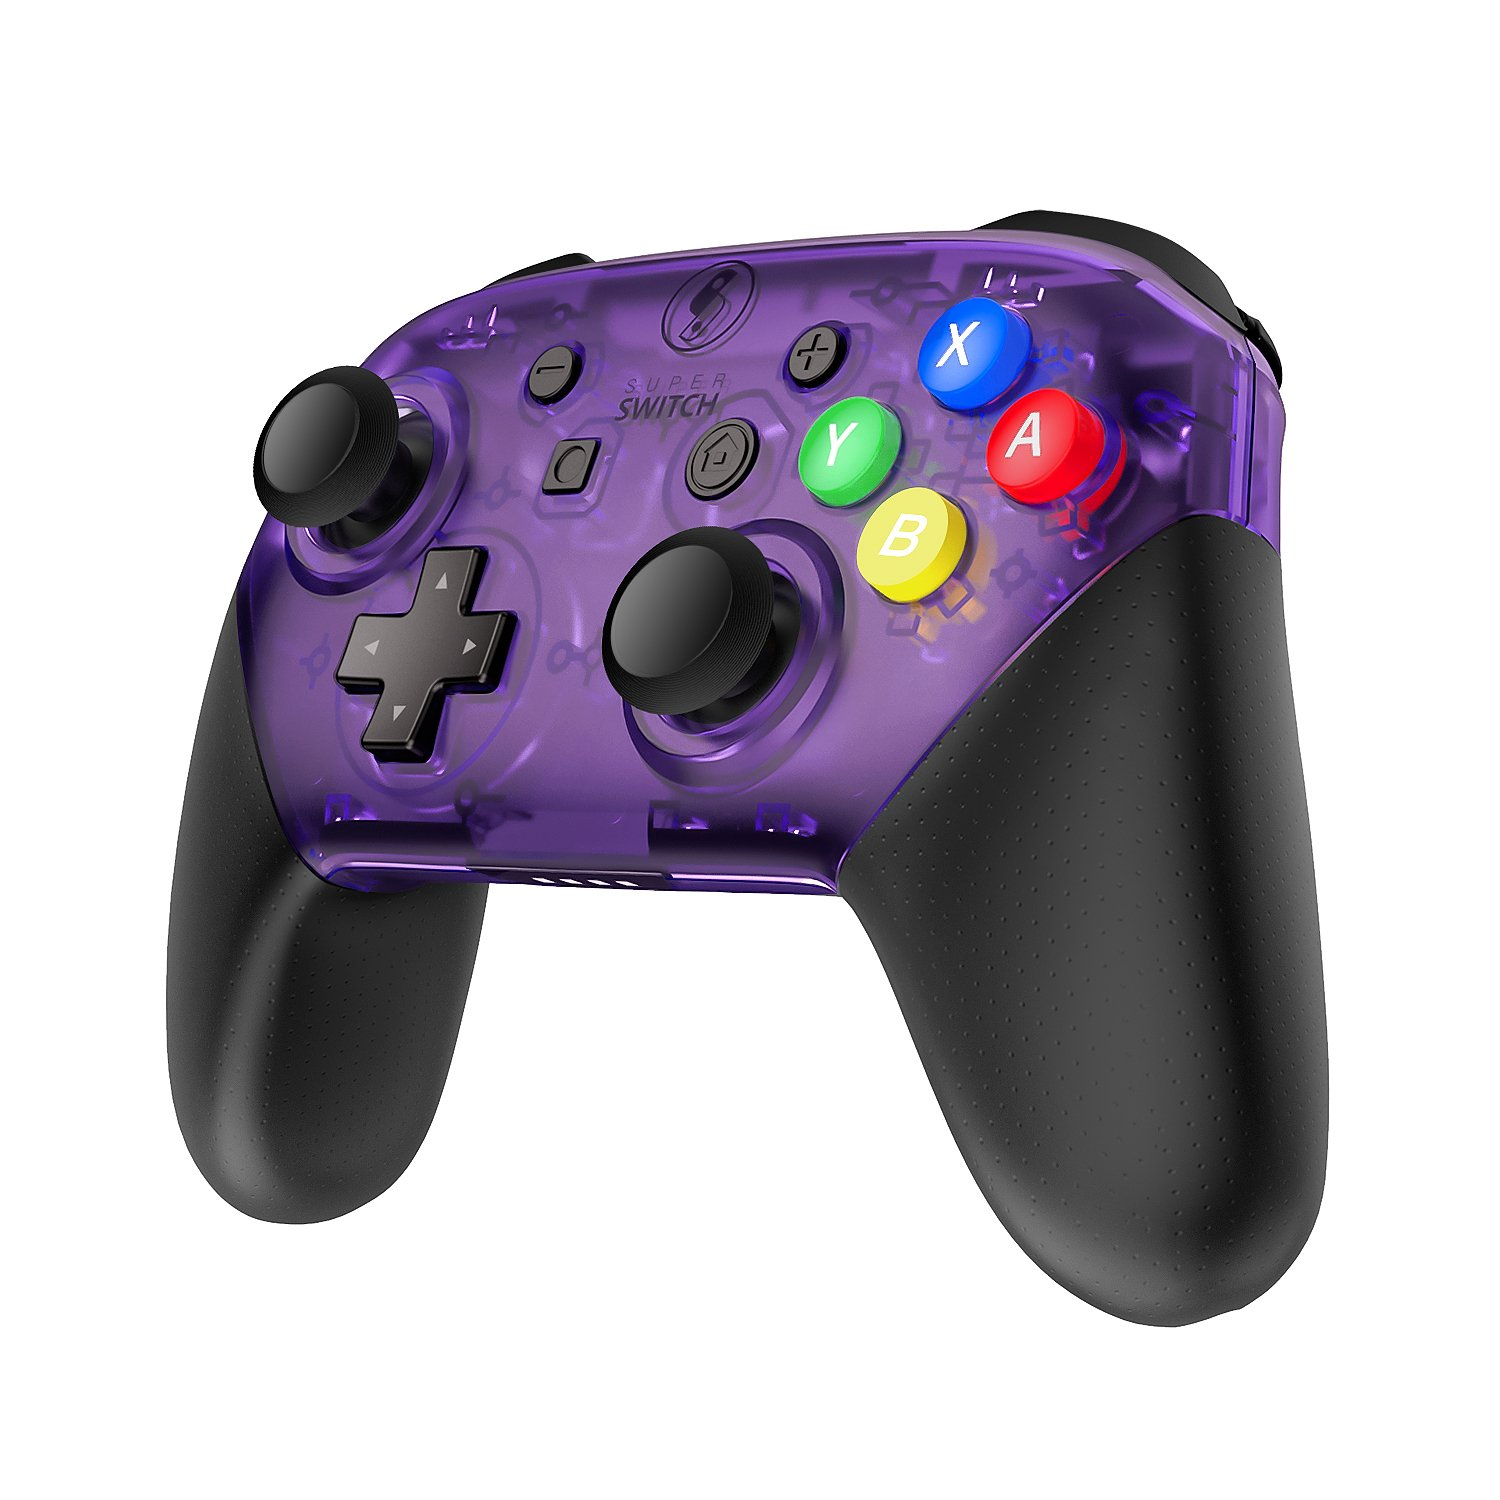 MASCARRY Replacement Shell Case for Switch Pro Controller, Super Switch DIY Transparent Faceplate and Backplate Case With Replacement Buttons for Switch Pro Controller (Atomic Purple) by MASCARRY